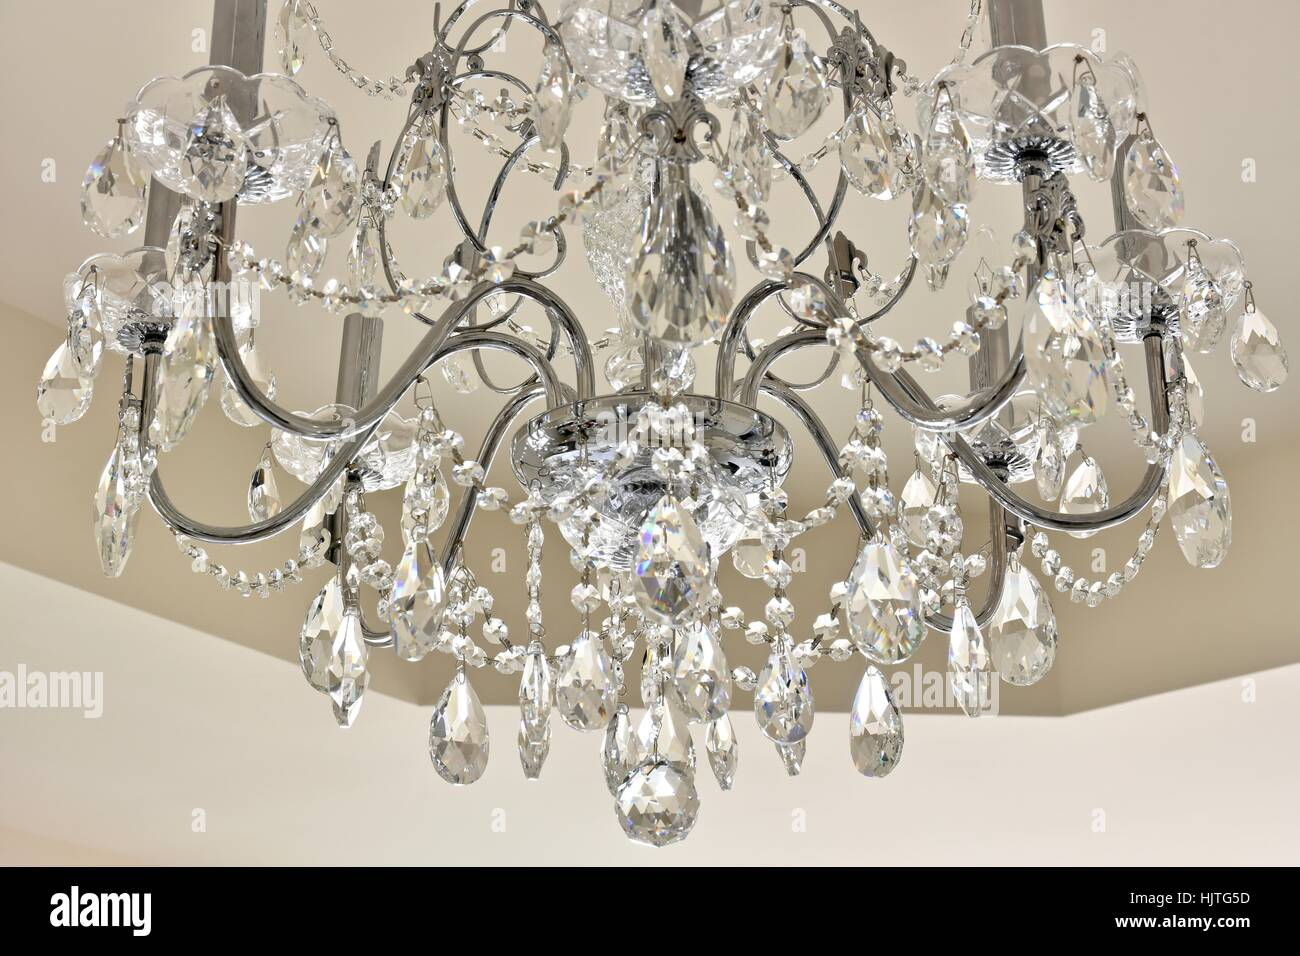 Crystal chandelier hanging from the ceiling of a master bedroom crystal chandelier hanging from the ceiling of a master bedroom arubaitofo Images